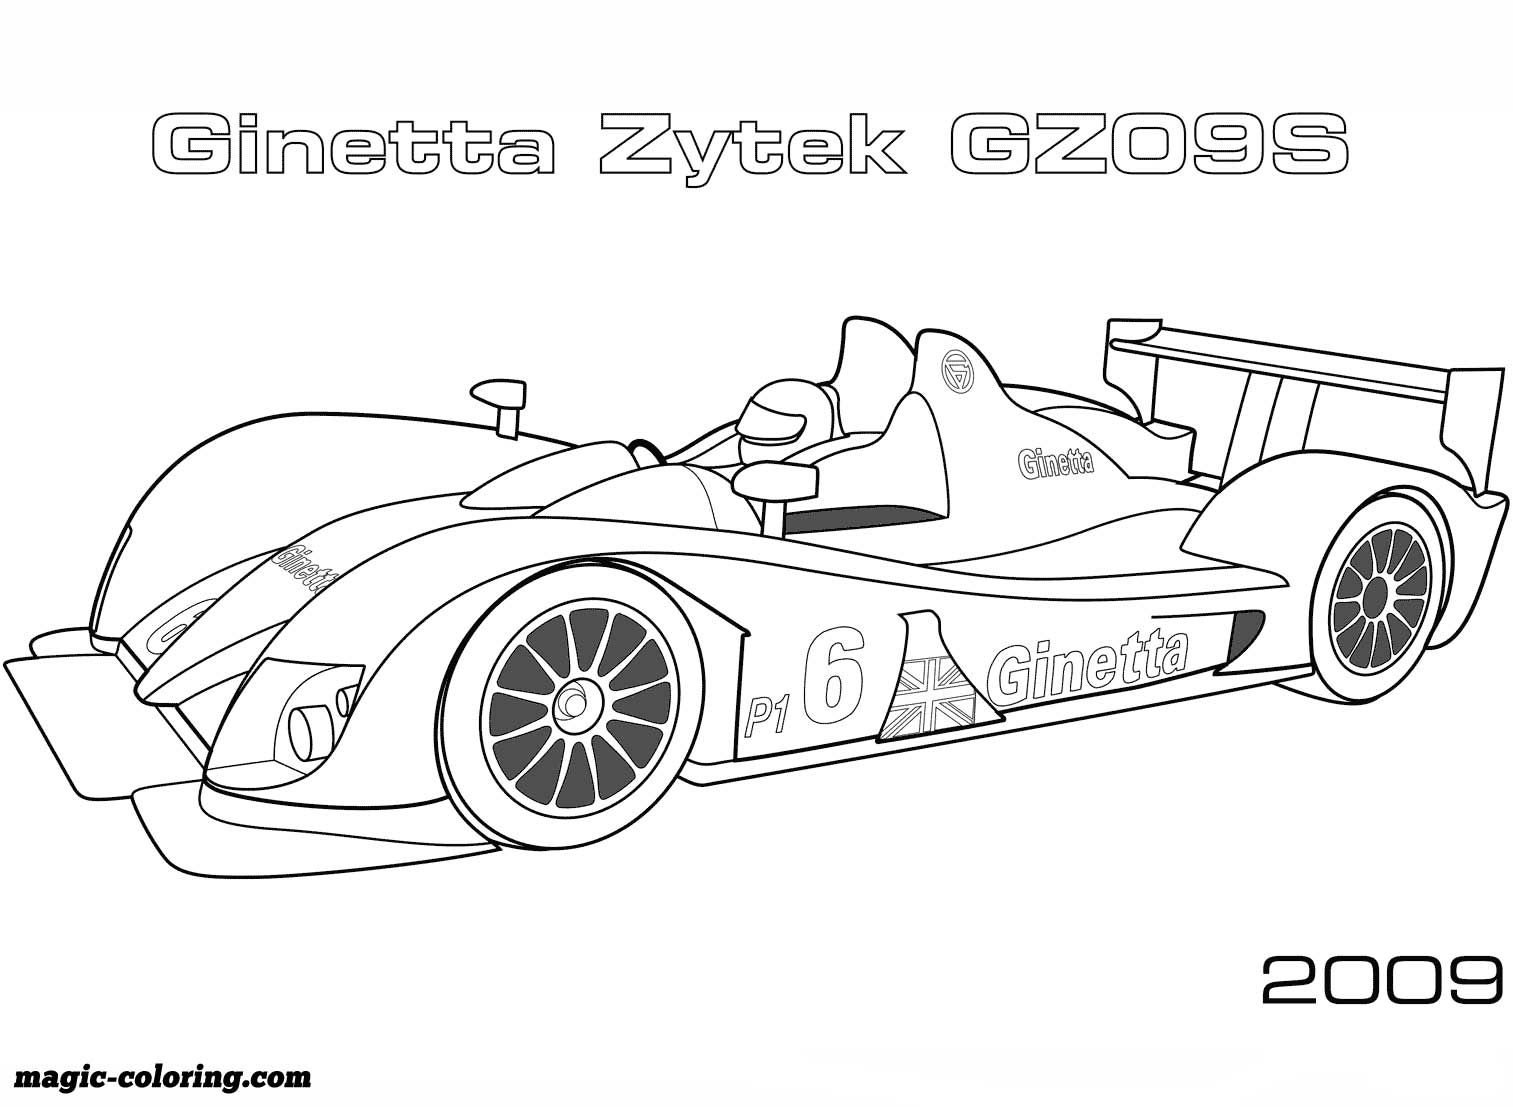 2009 Ginetta Zytek Gz09s Coloring Page Race Car Coloring Pages Cars Coloring Pages Sports Coloring Pages